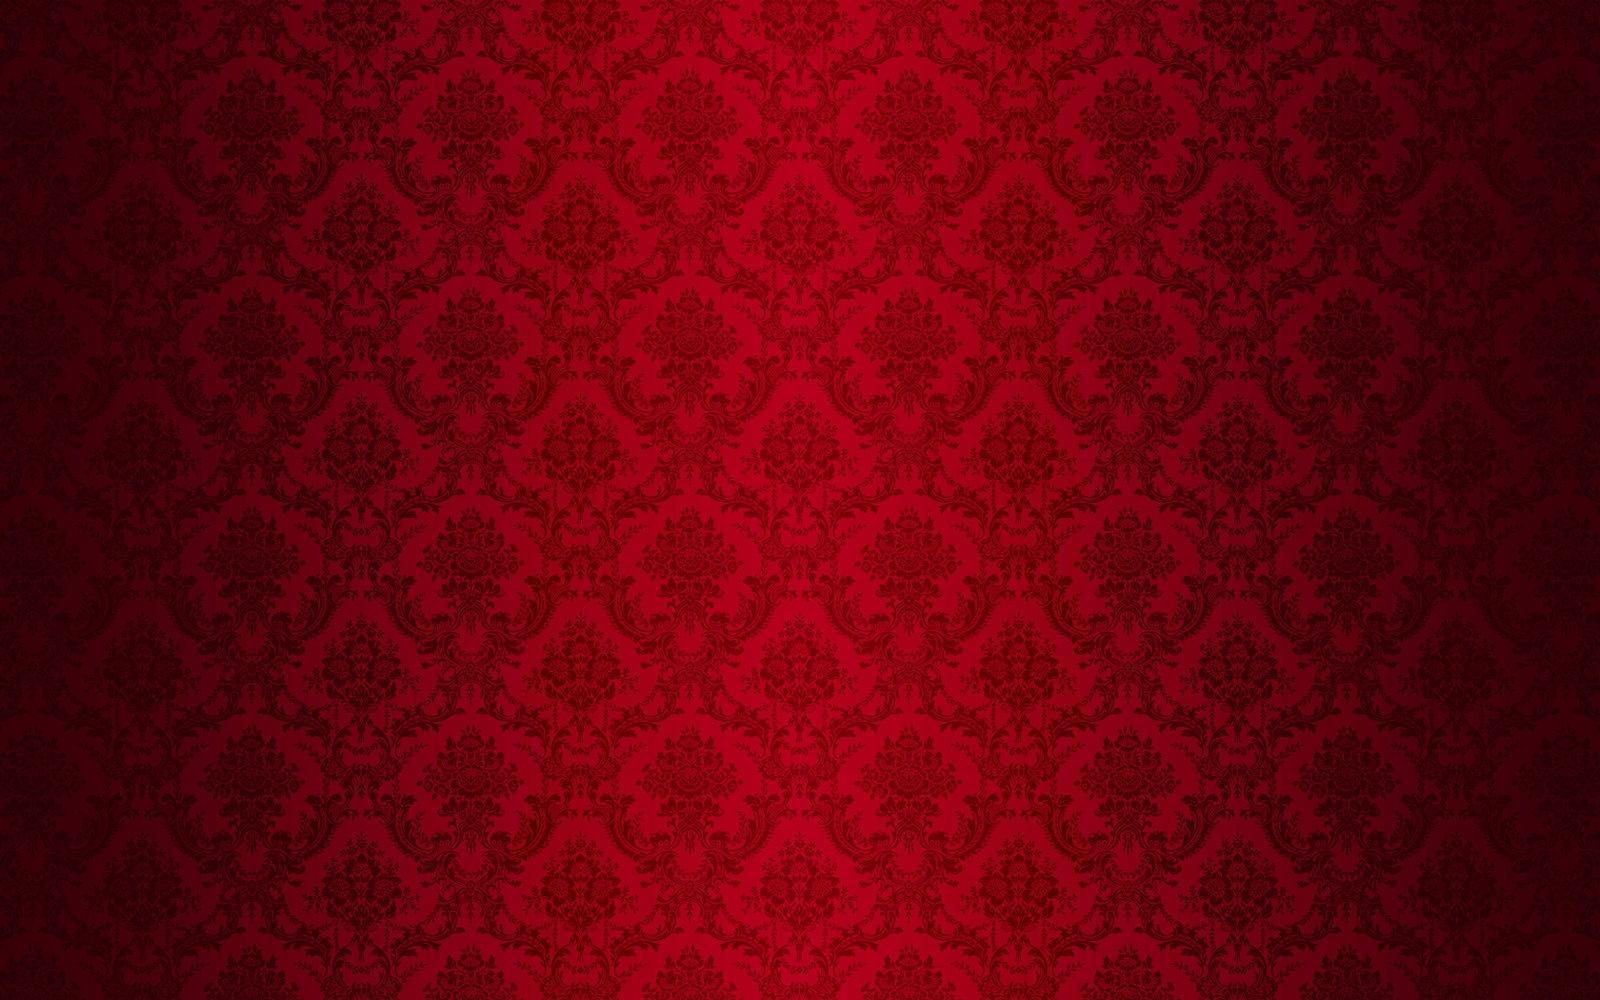 Vintage Red Damask Background